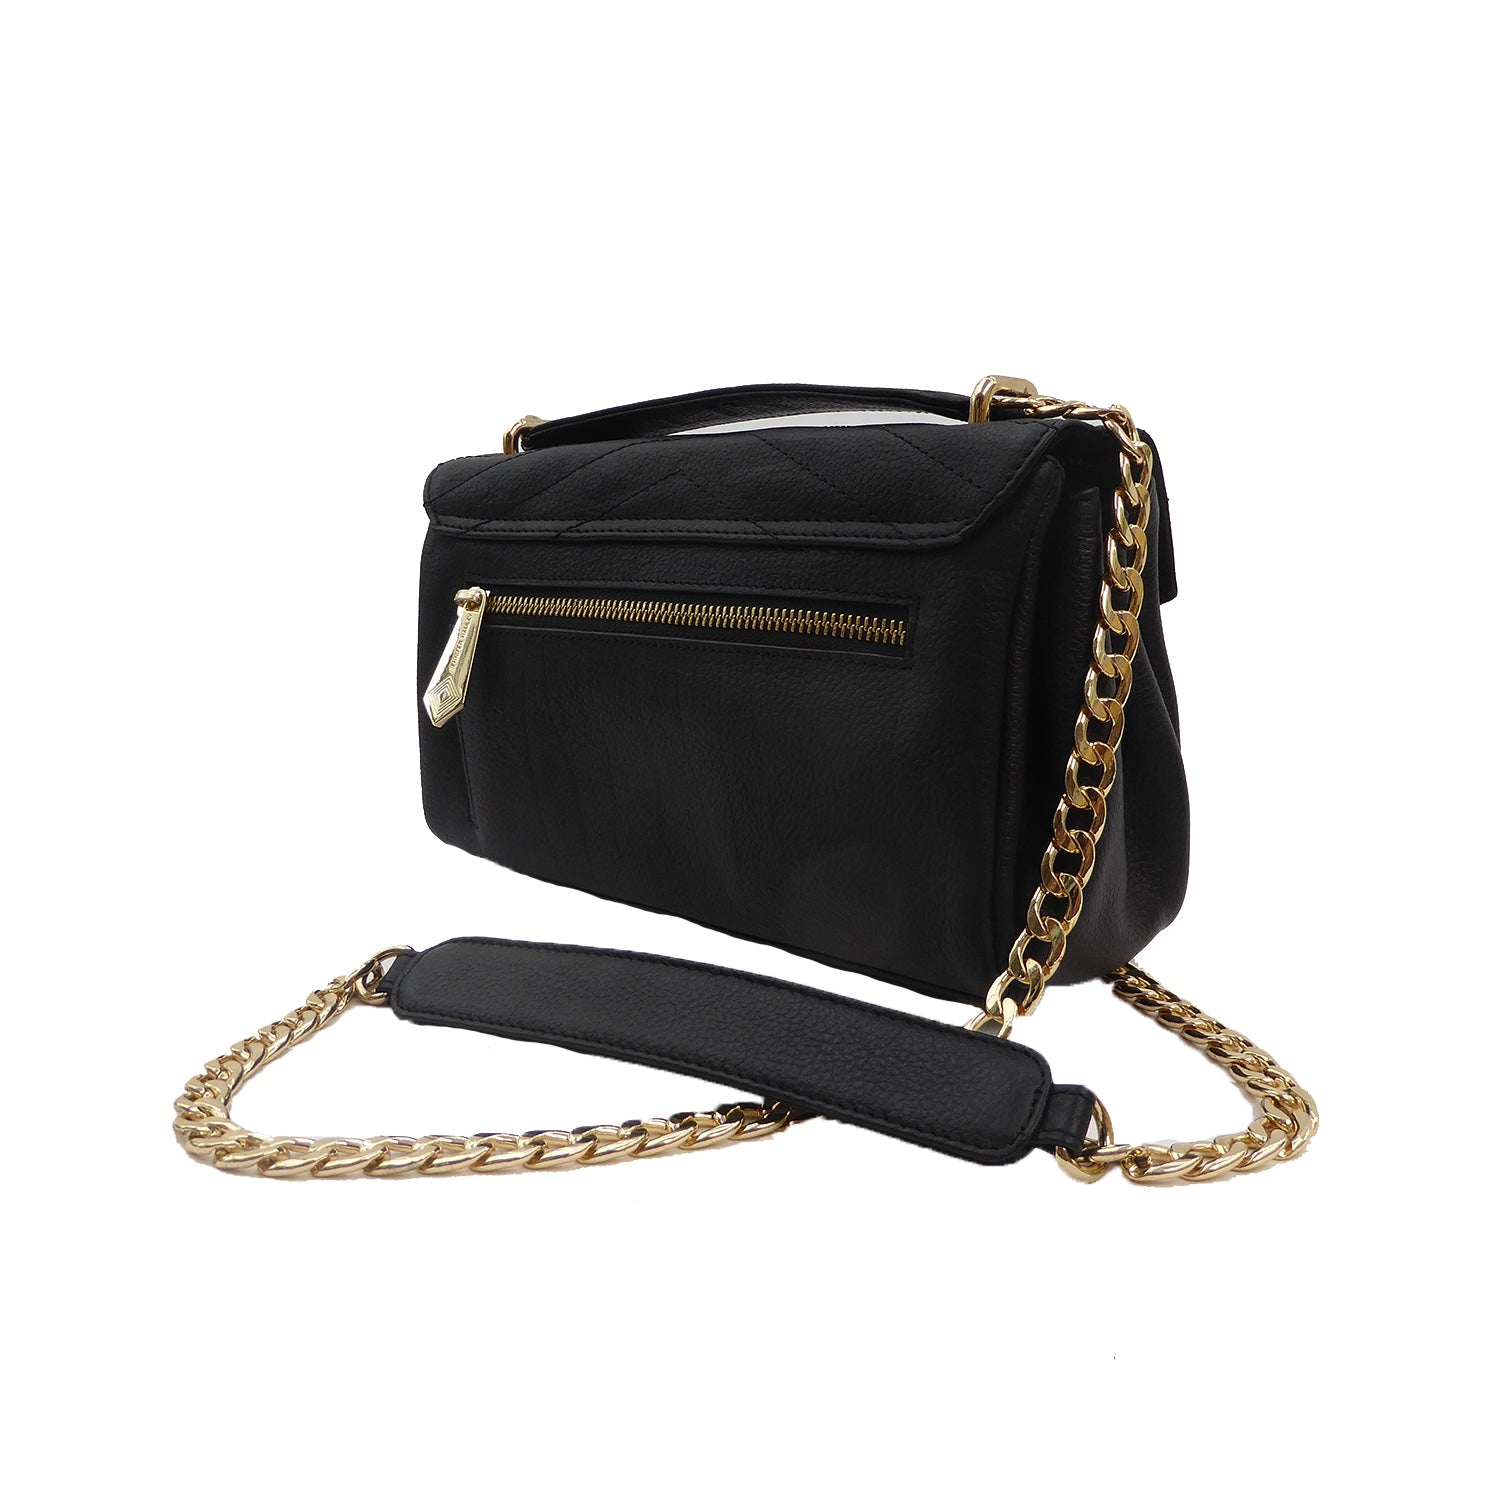 Vegan - Shoulder Chain Evening Bag - Jennifer Hamley luxury leather handbags and laptop bag for working women